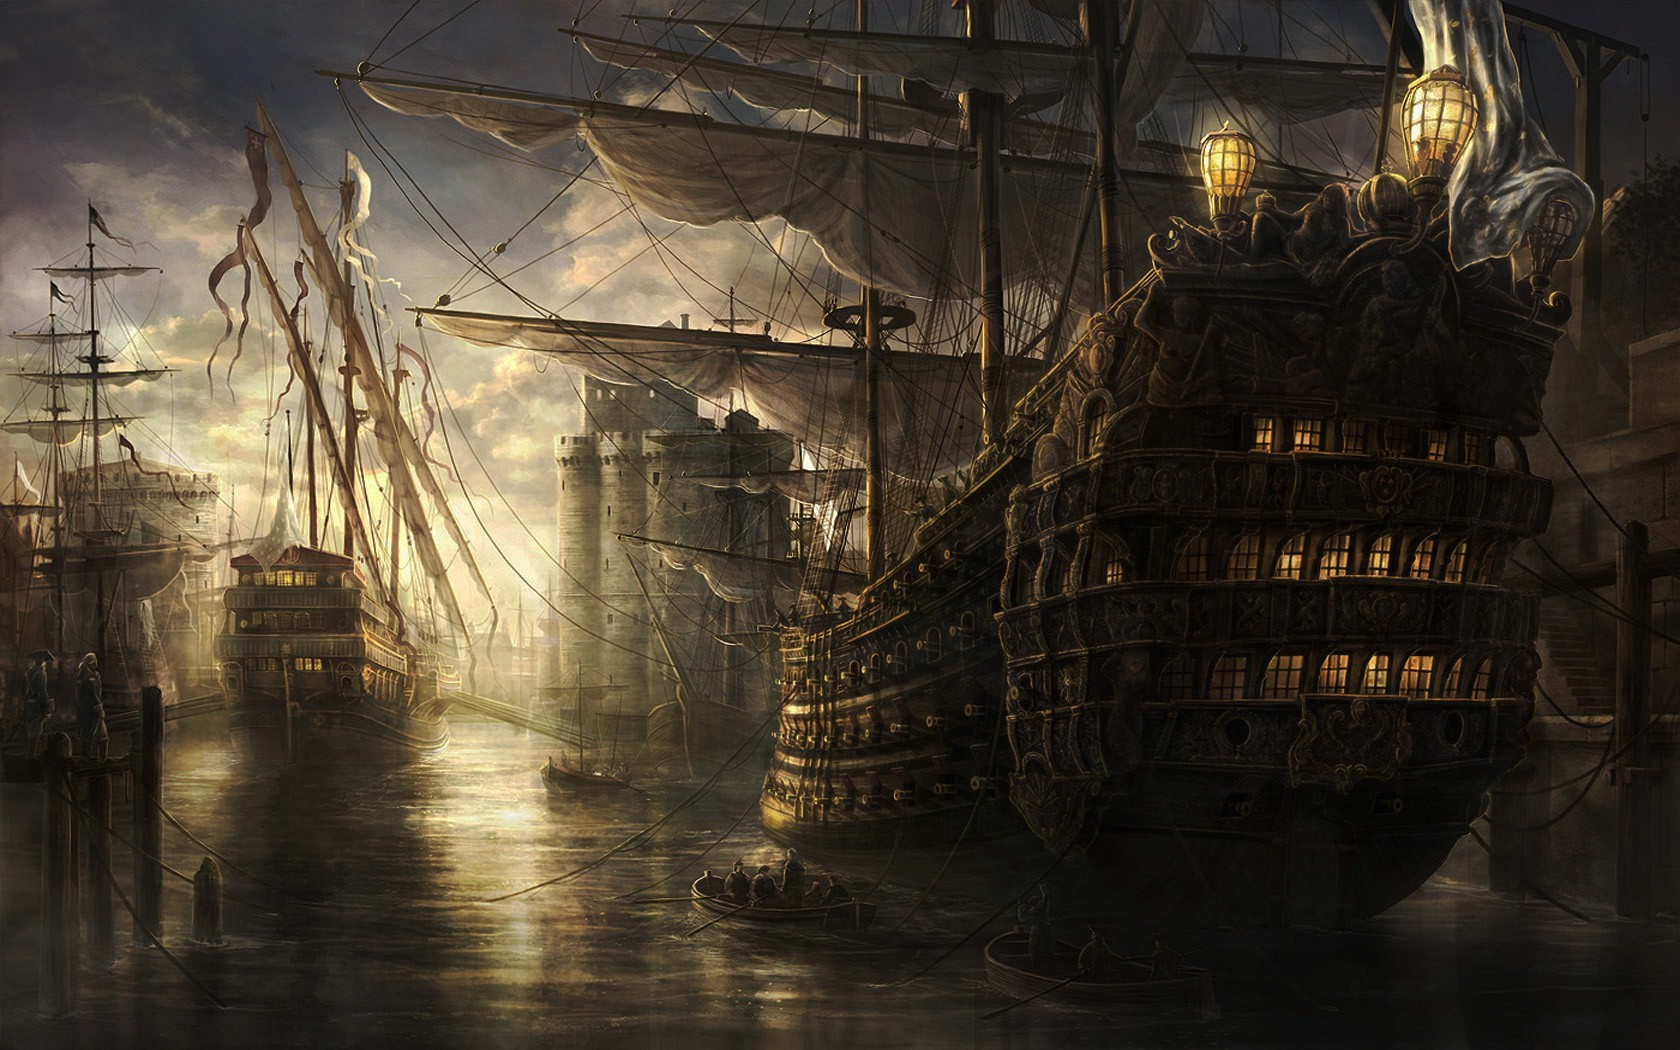 Hd Wallpaper Girls 1920x1200 Sea Old Ship Wallpapers Hd Desktop And Mobile Backgrounds